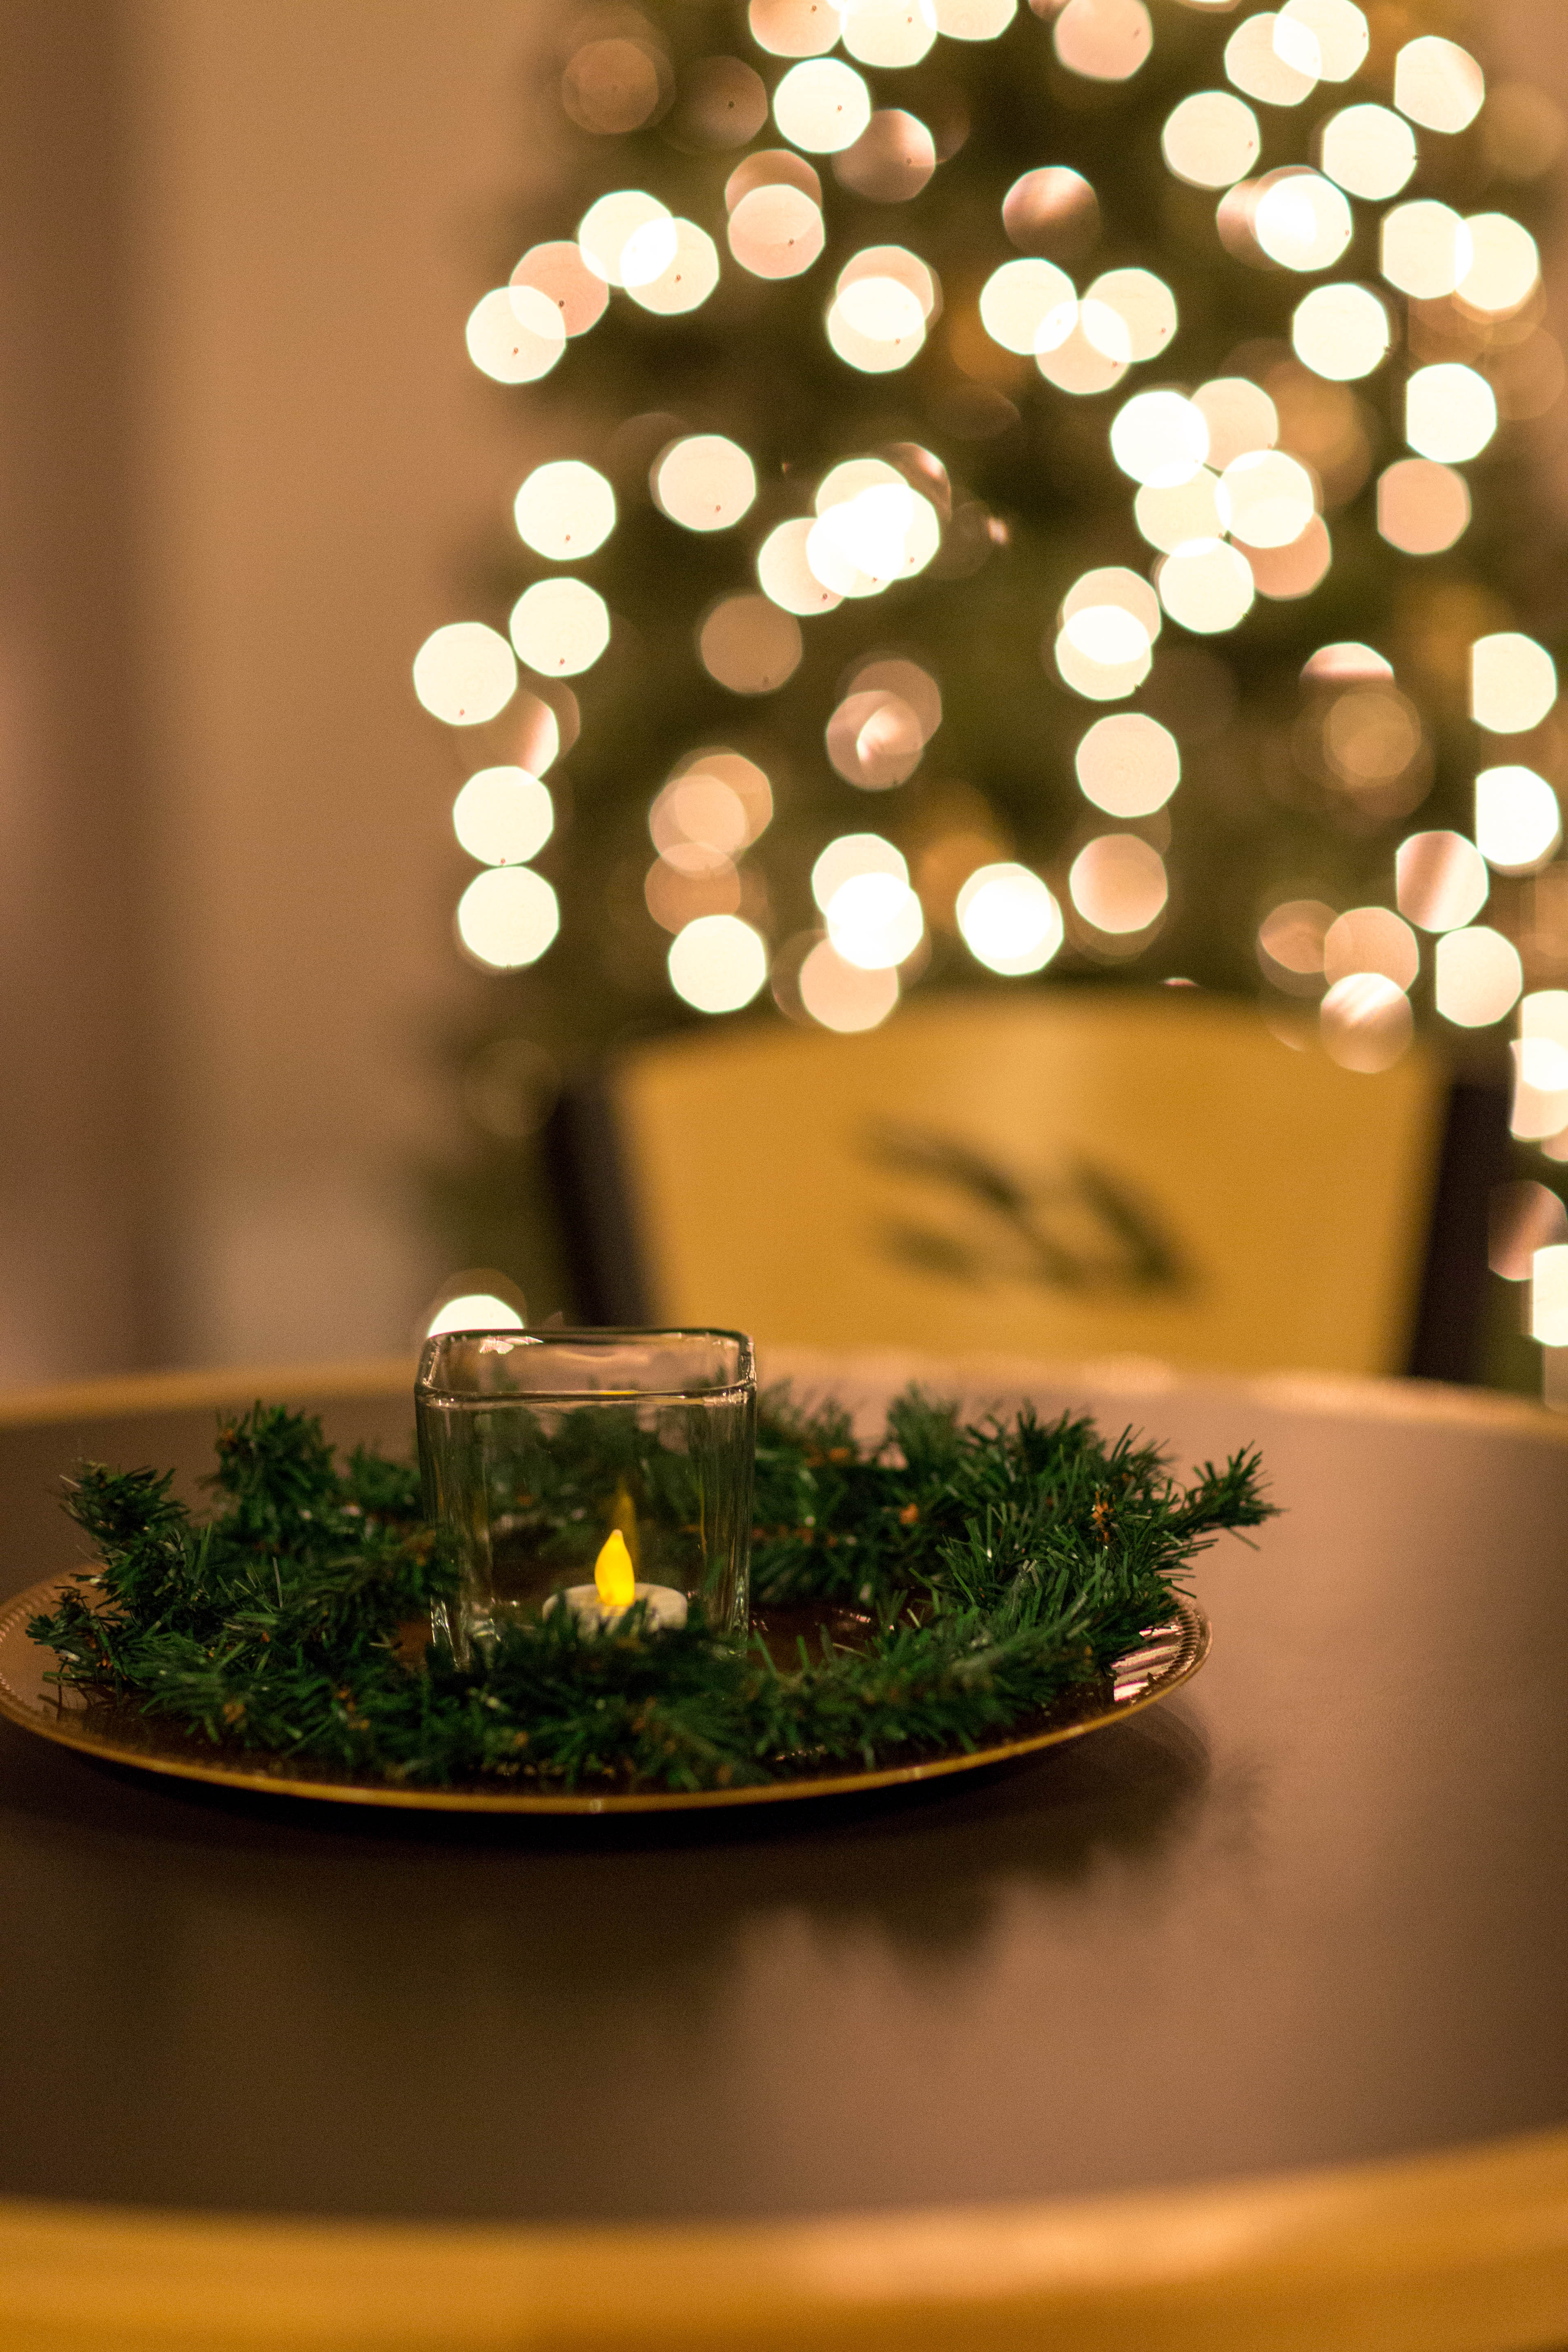 Lights and Candle (JPG)